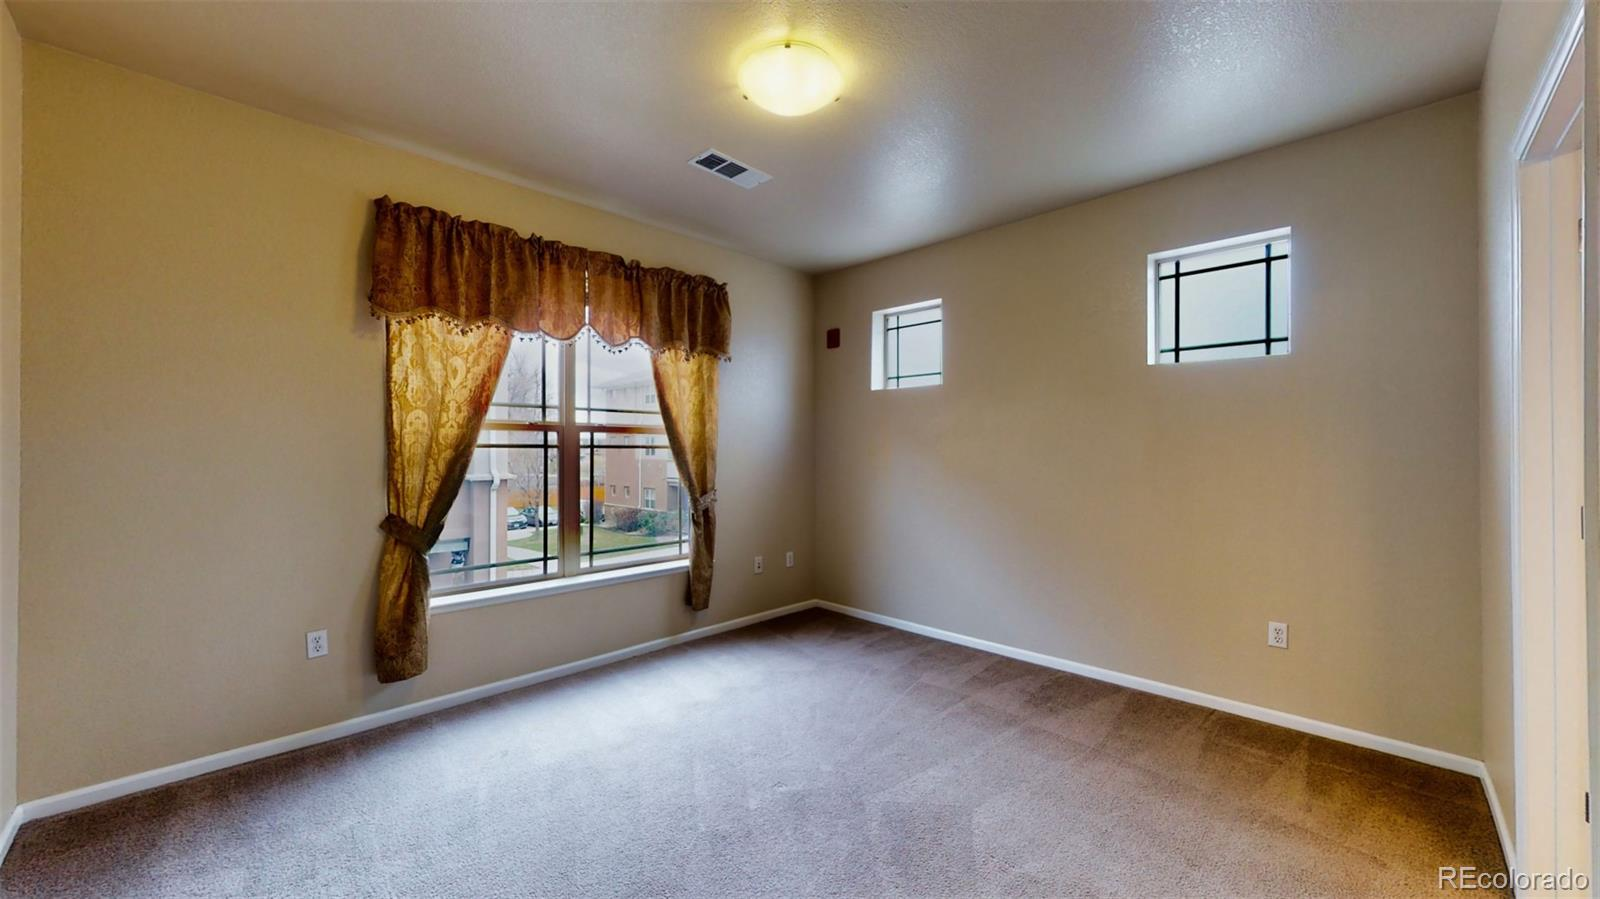 MLS# 3562922 - 9 - 8123 W 51st Place #202, Arvada, CO 80002